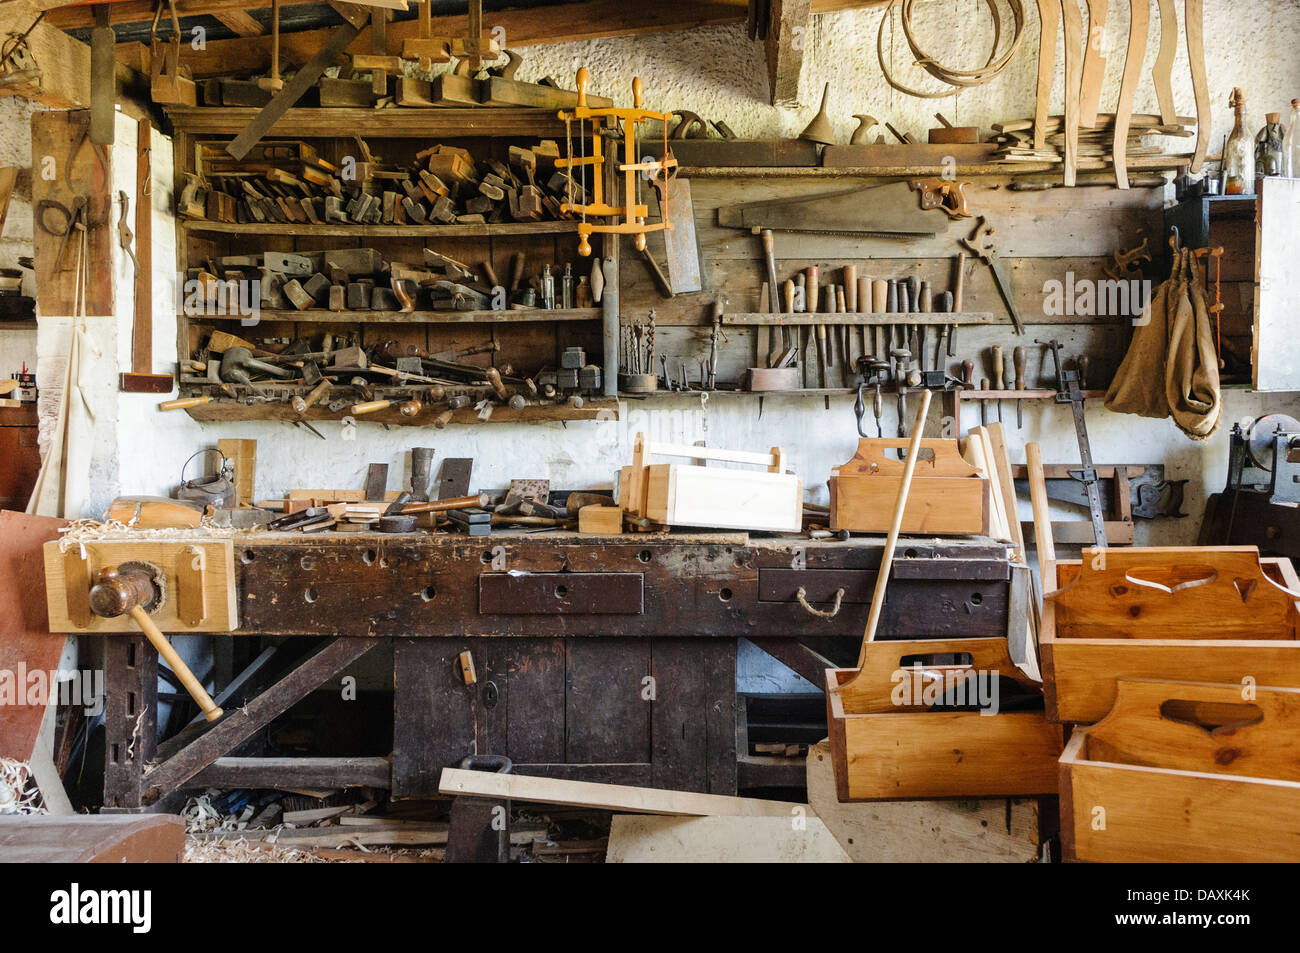 Old carpenters workshop with tools and finished products - Stock Image